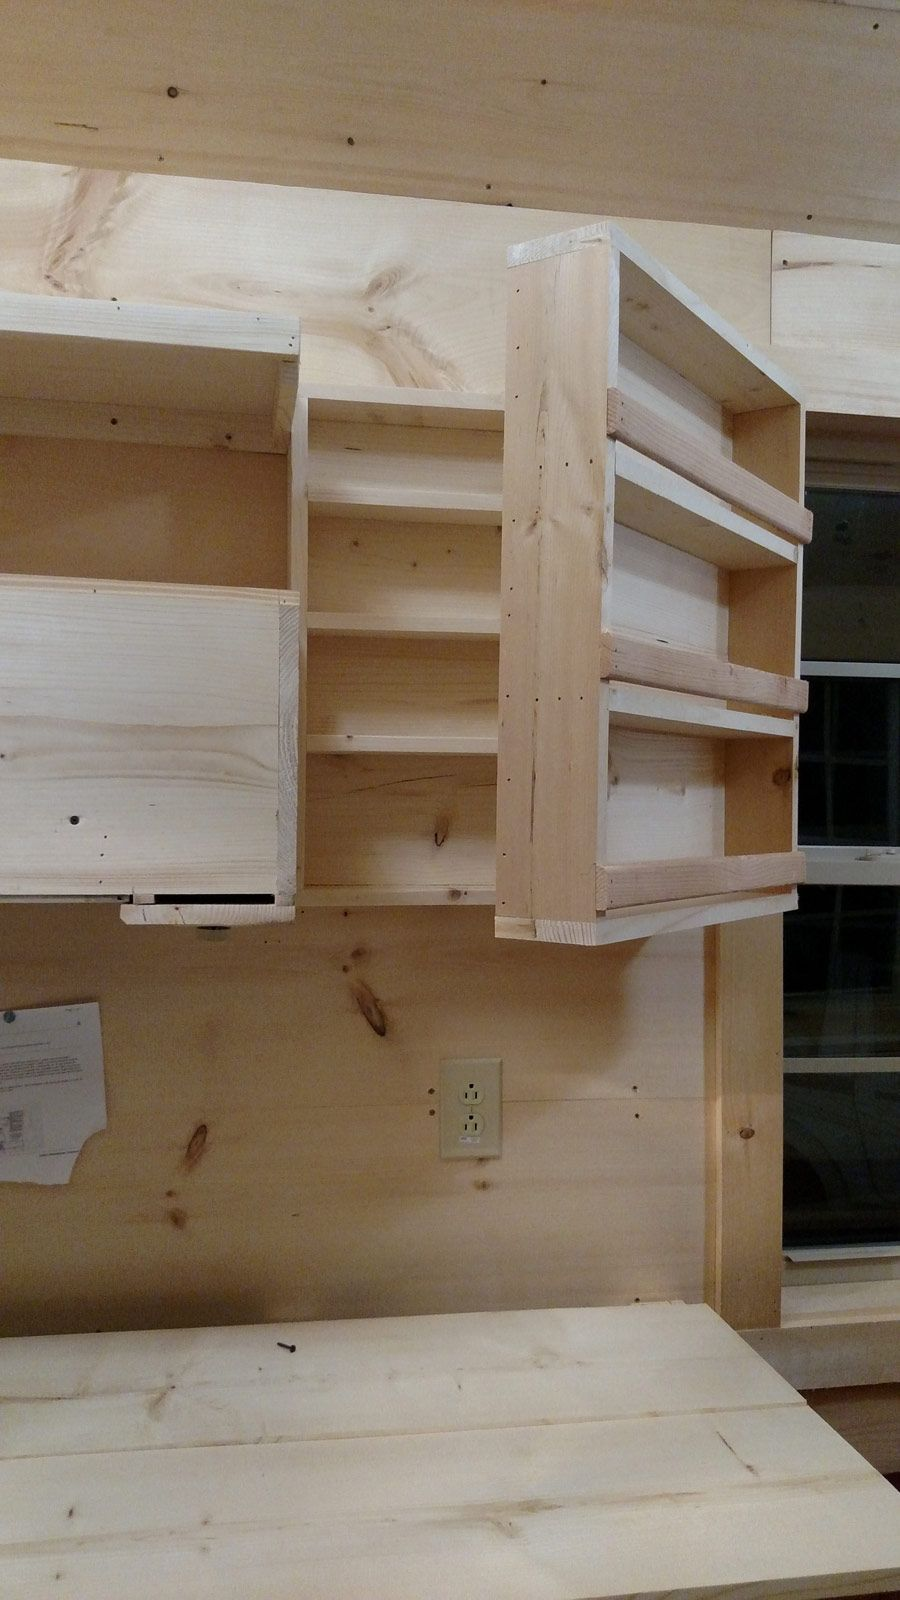 This is clever storage shelving that hingeopens to more storage